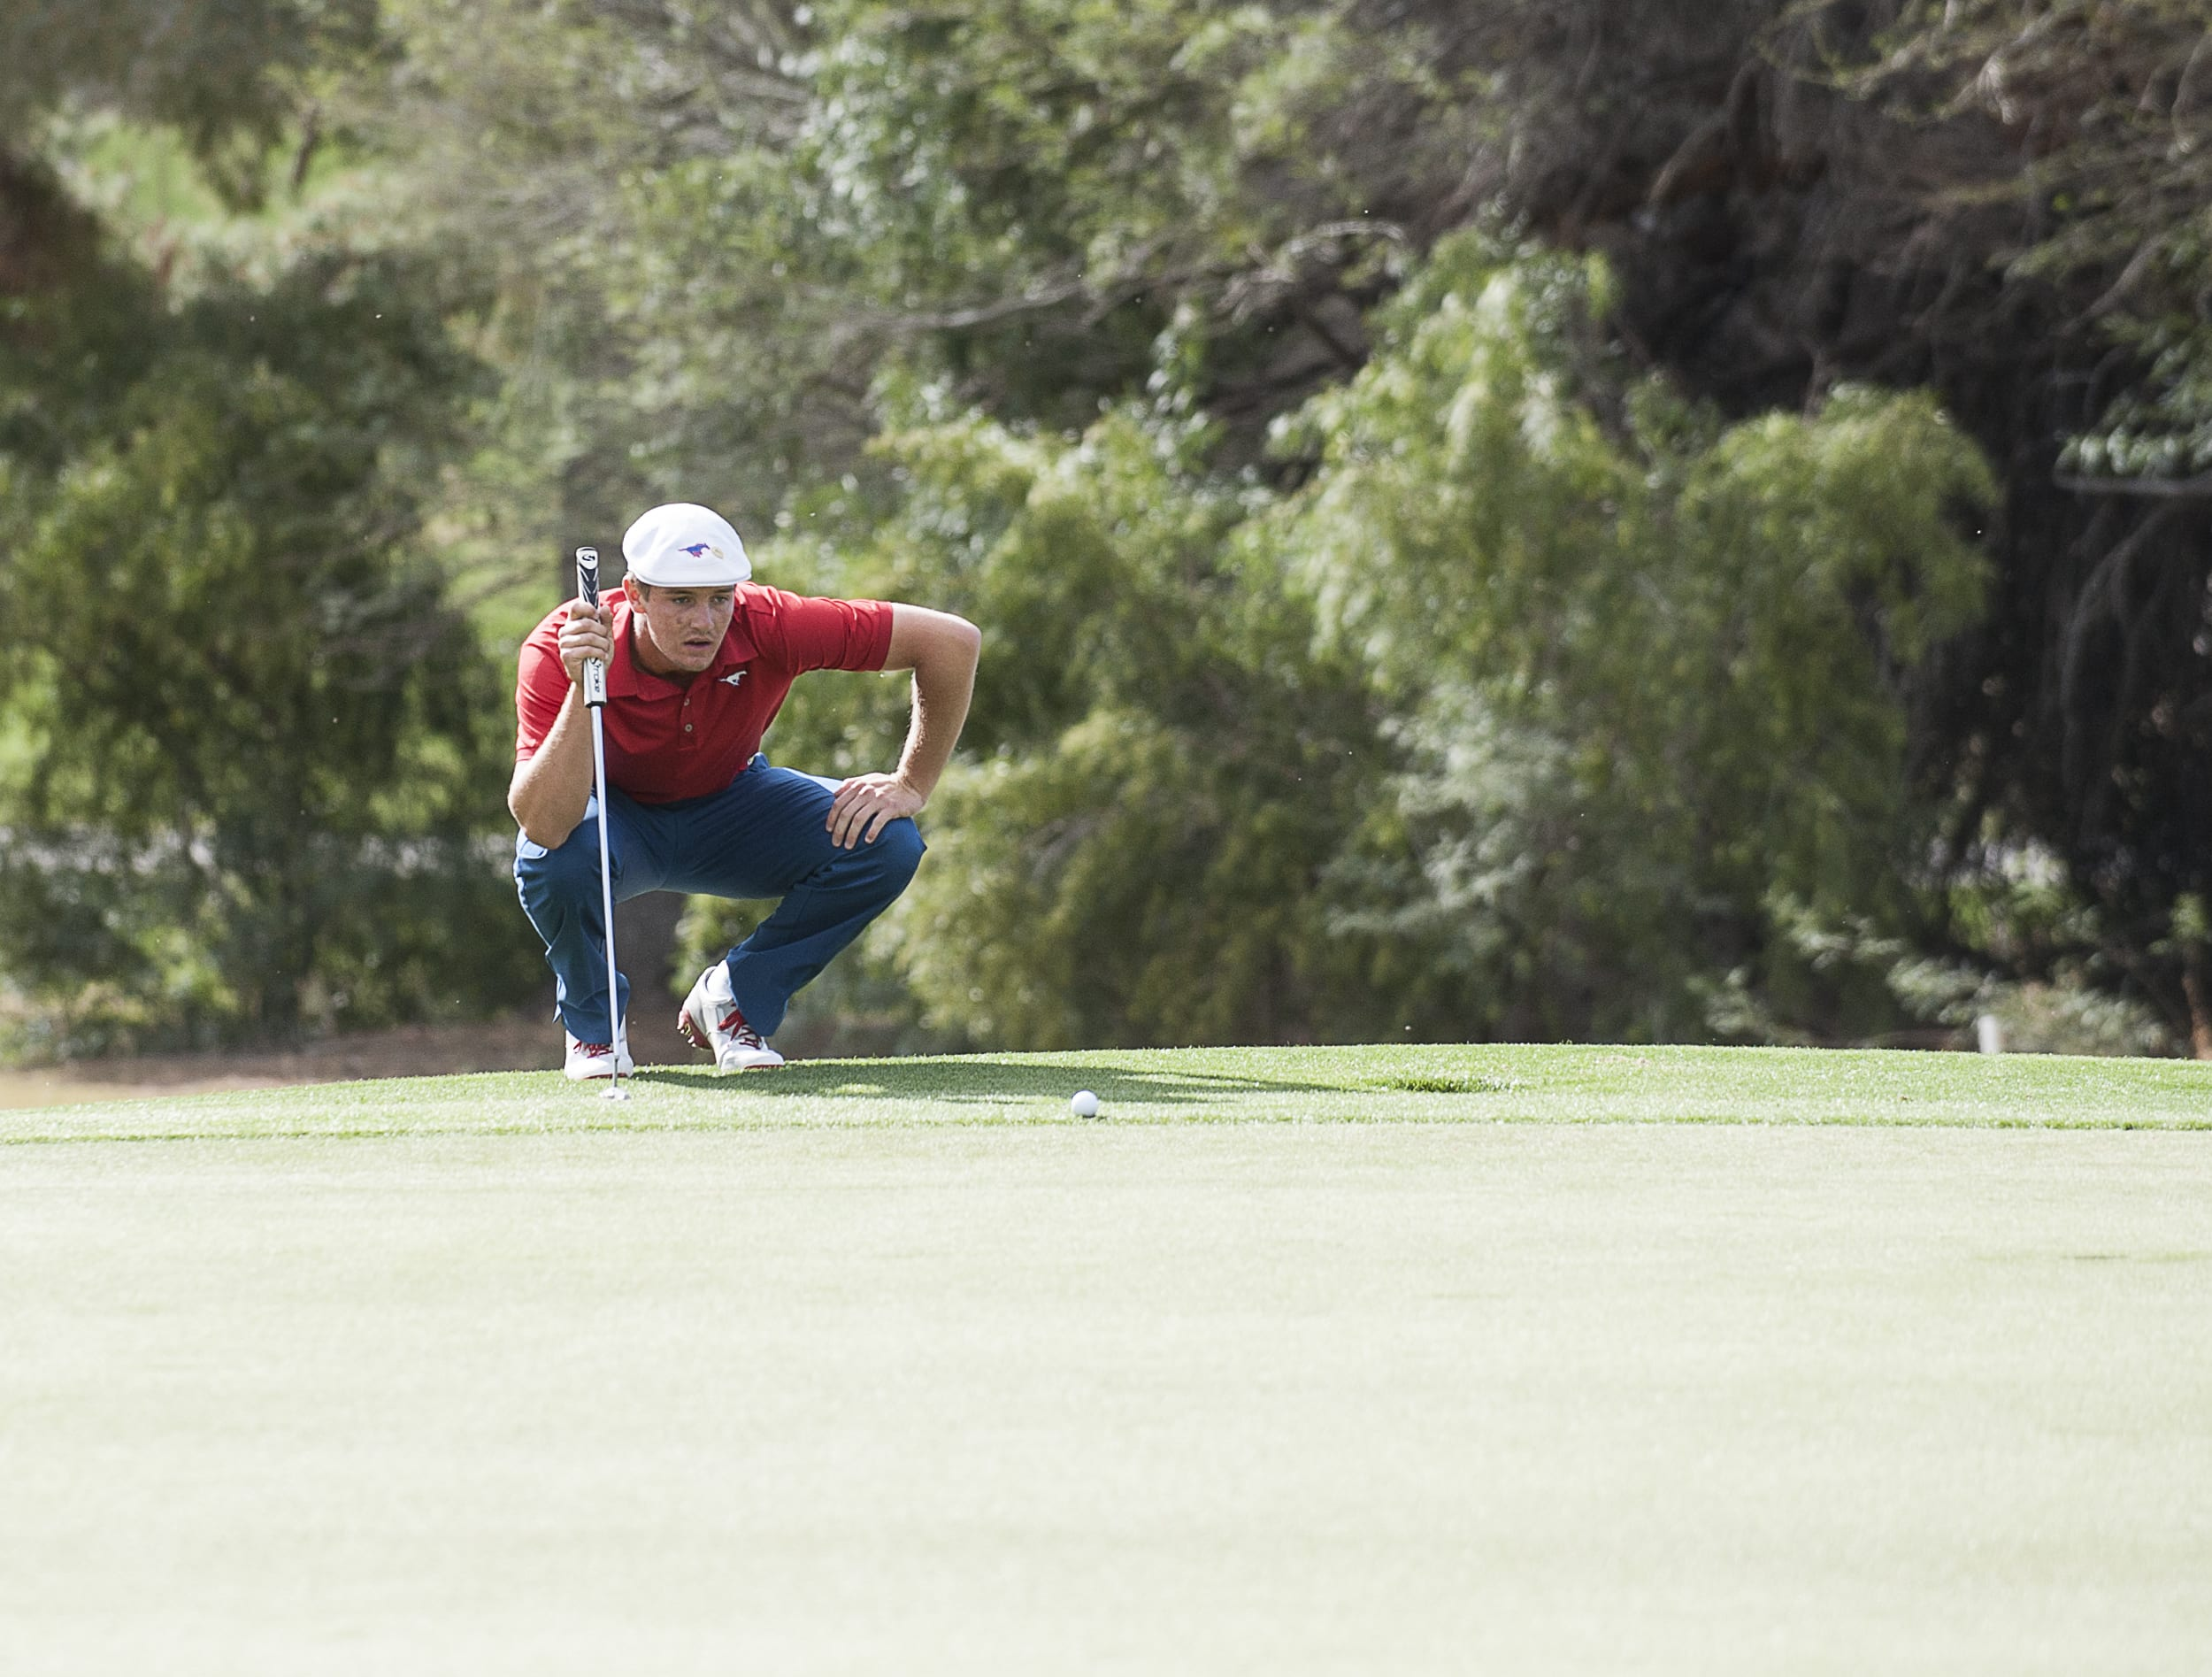 Combining Championship Golf and a Love of Physics